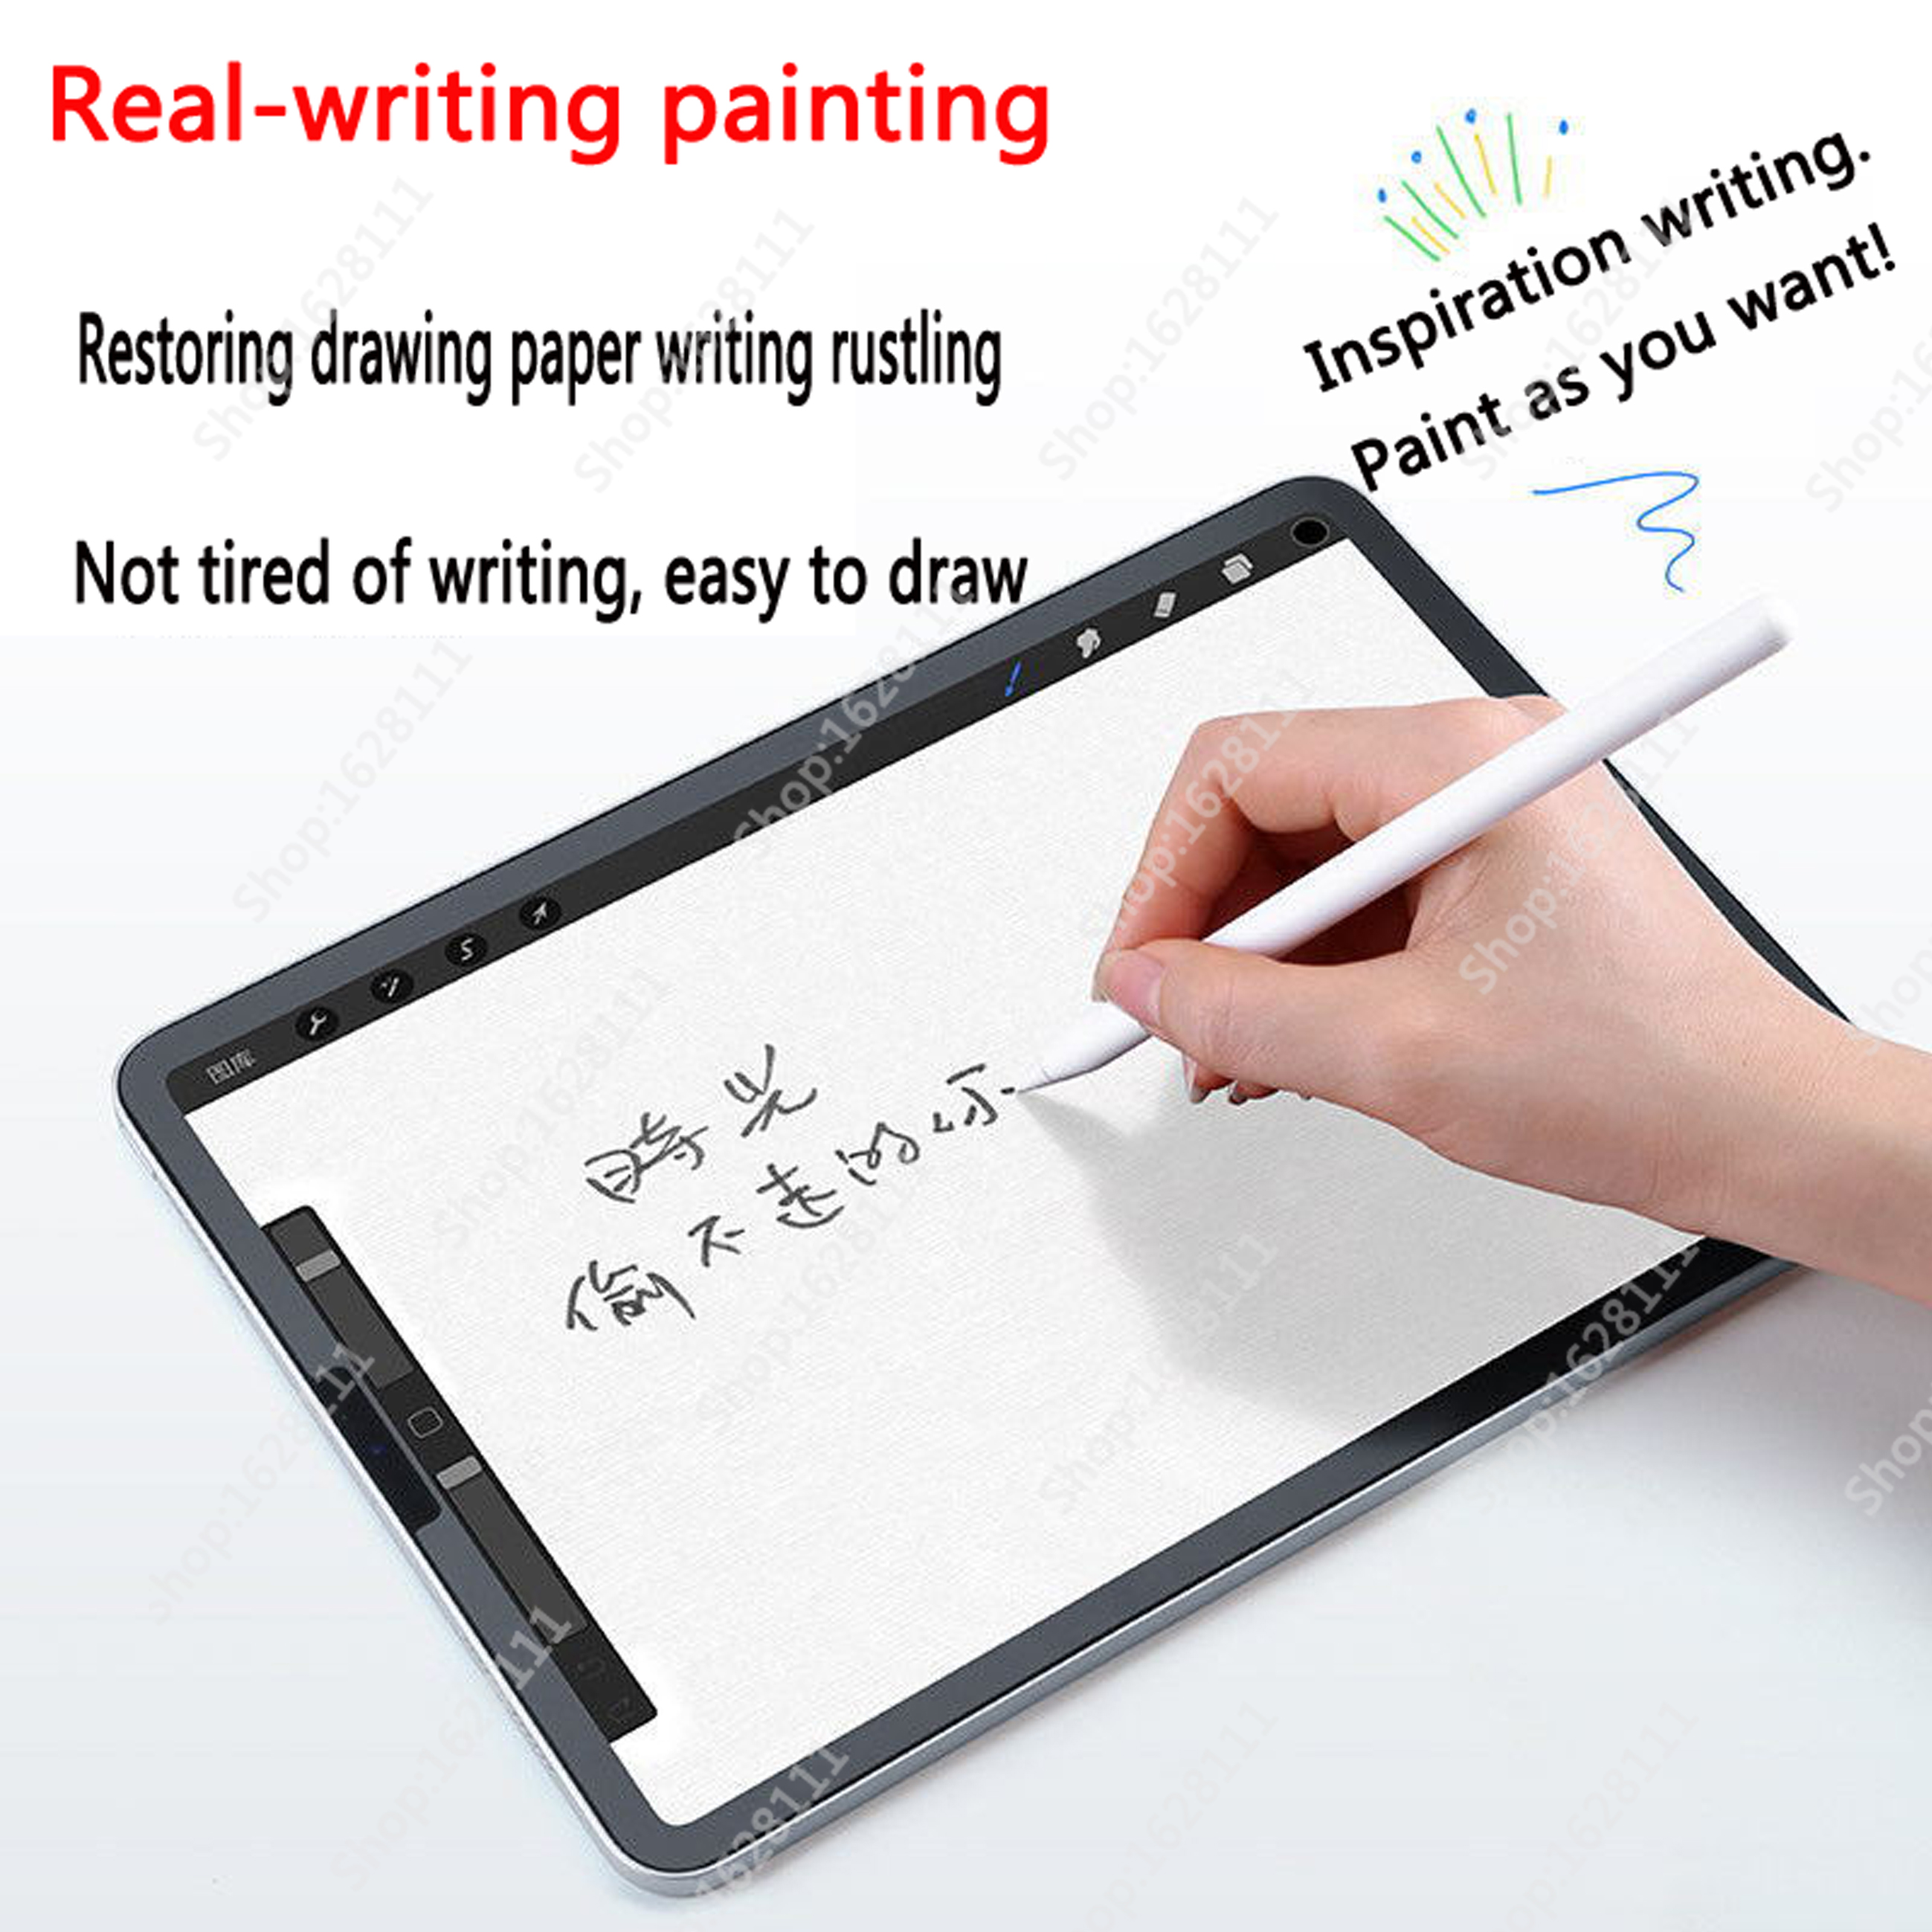 """Paper Like Screen Protector Film Matte PET Painting Write For Huawei Mediapad M6 8.4 10.8 inch Honor V6 10.4 """"2020 4"""